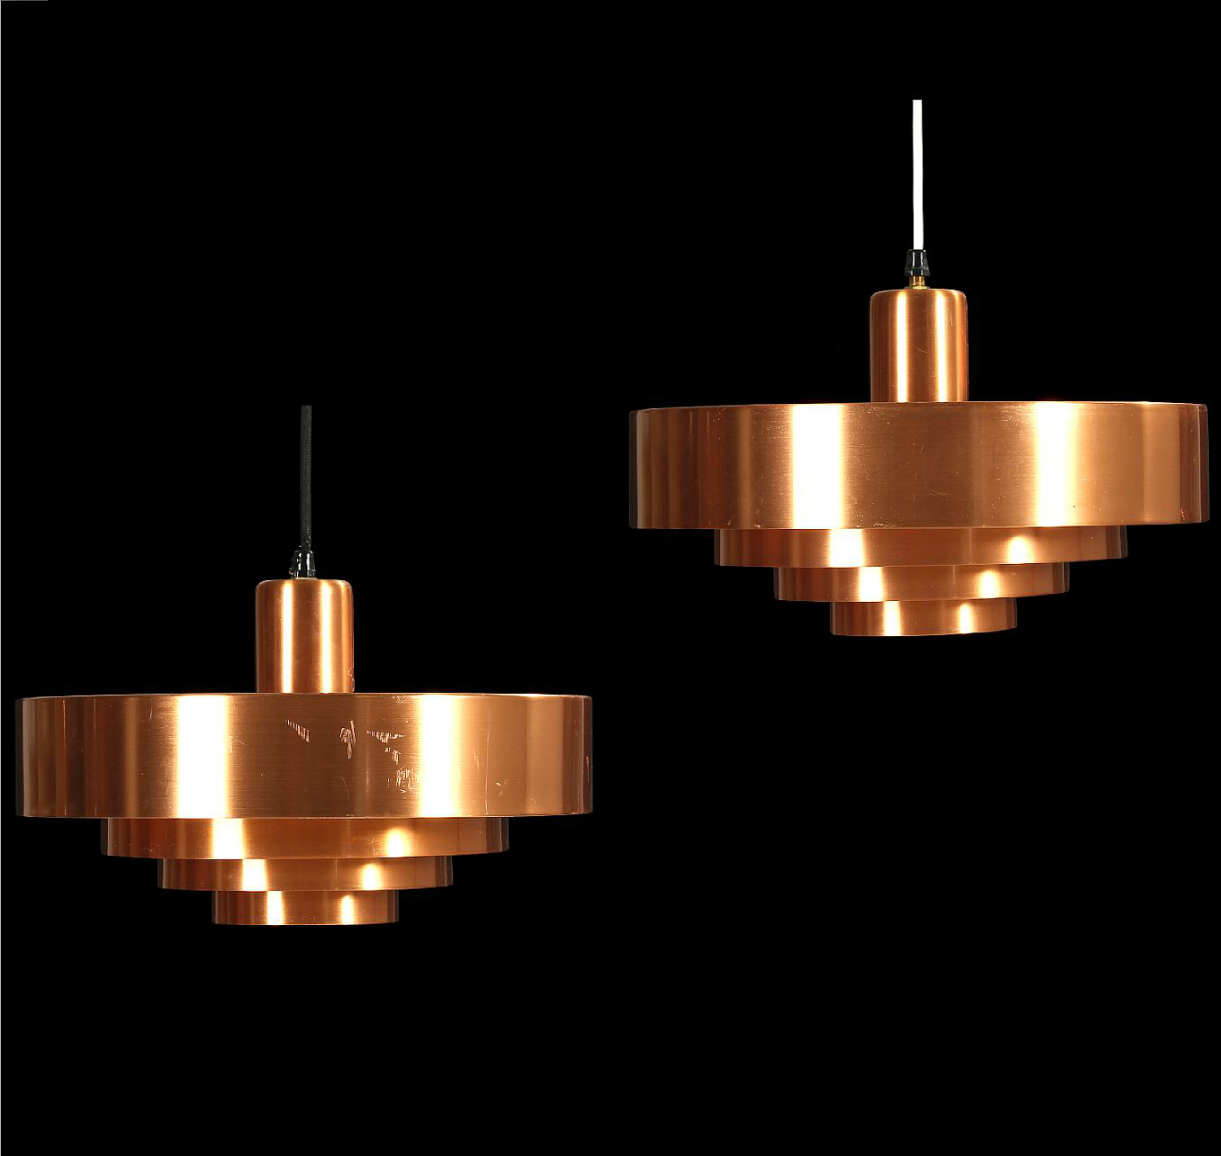 Jo Hammerborg Copper Roulet Ceiling Lights For Fog Morup 1960s